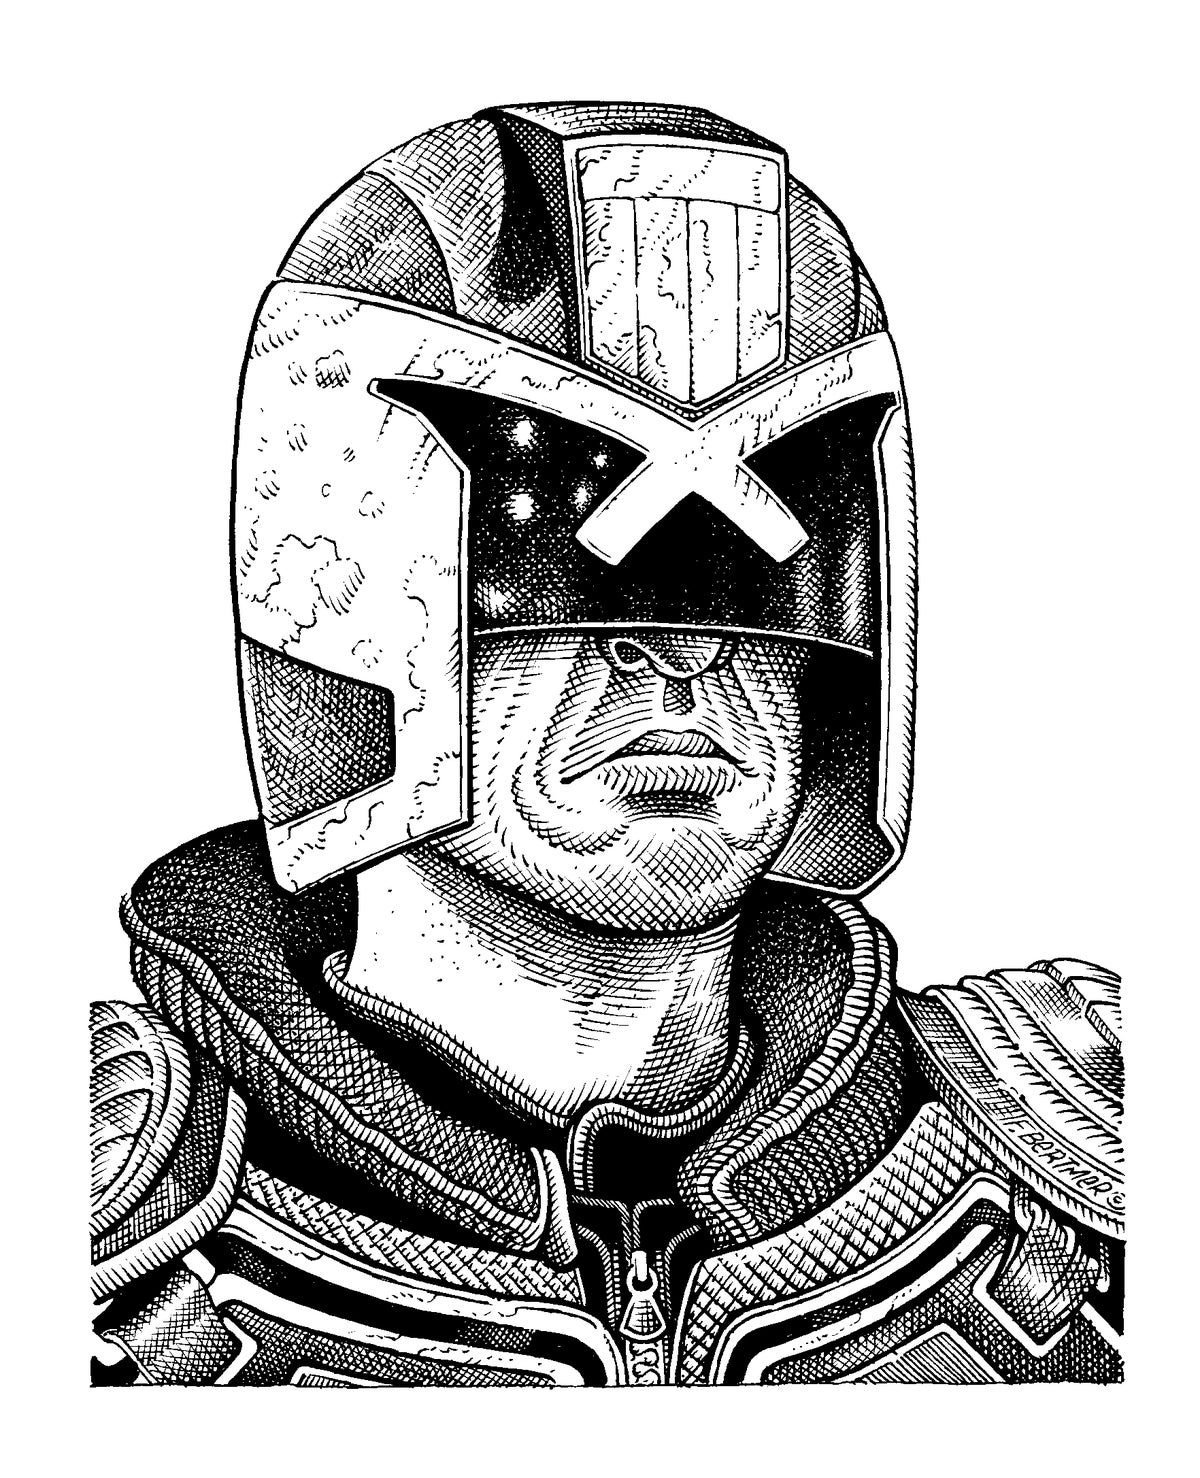 Image of Dredd - Original Artwork